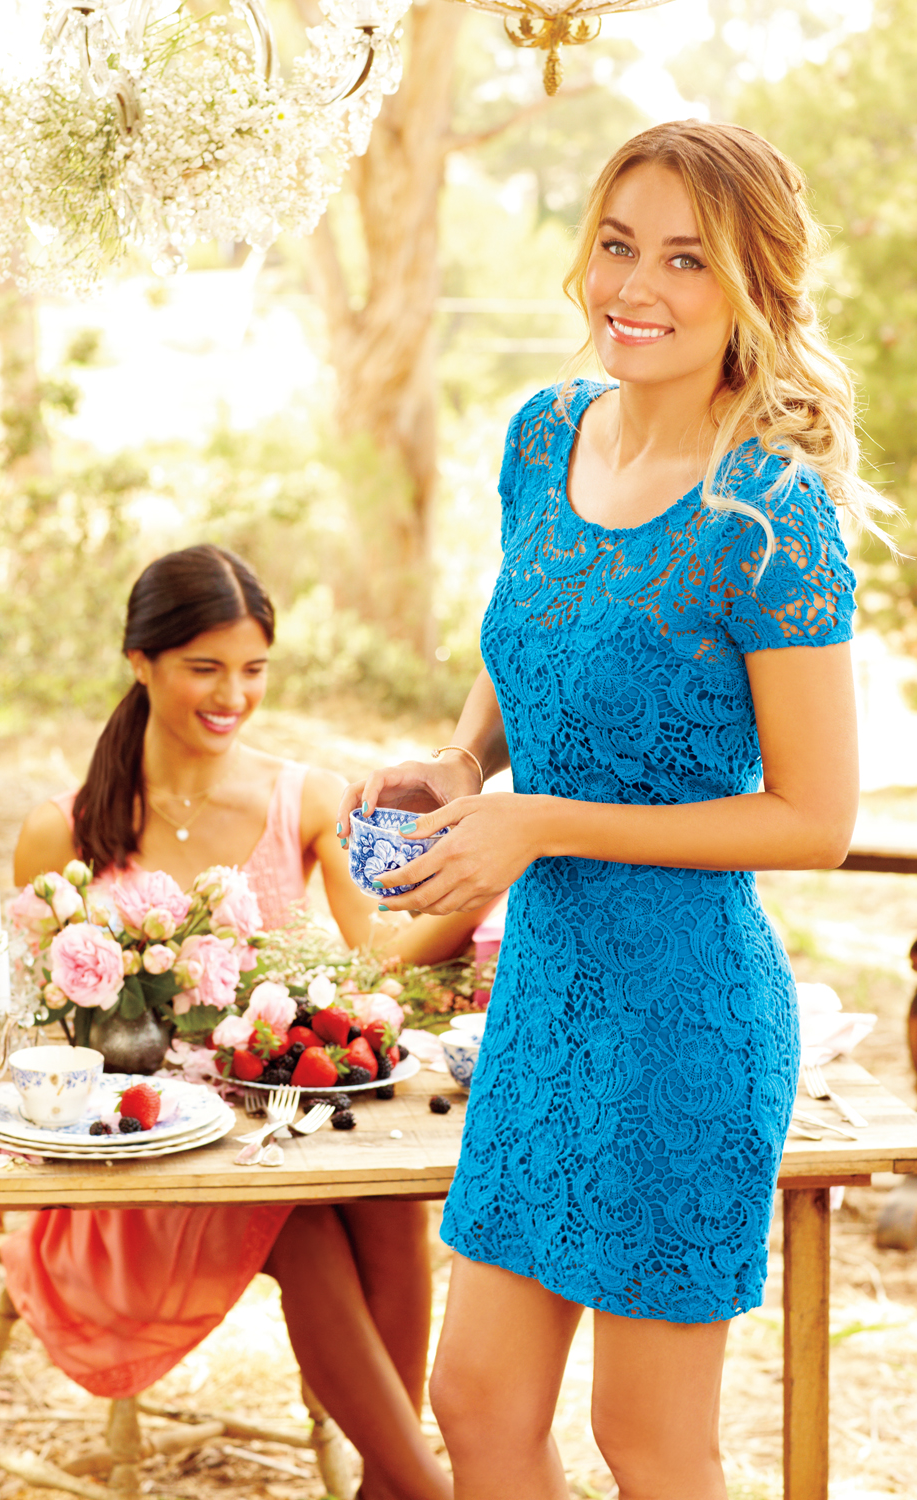 The sky\'s the limit in a blue lace dress from #LCLaurenConrad ...